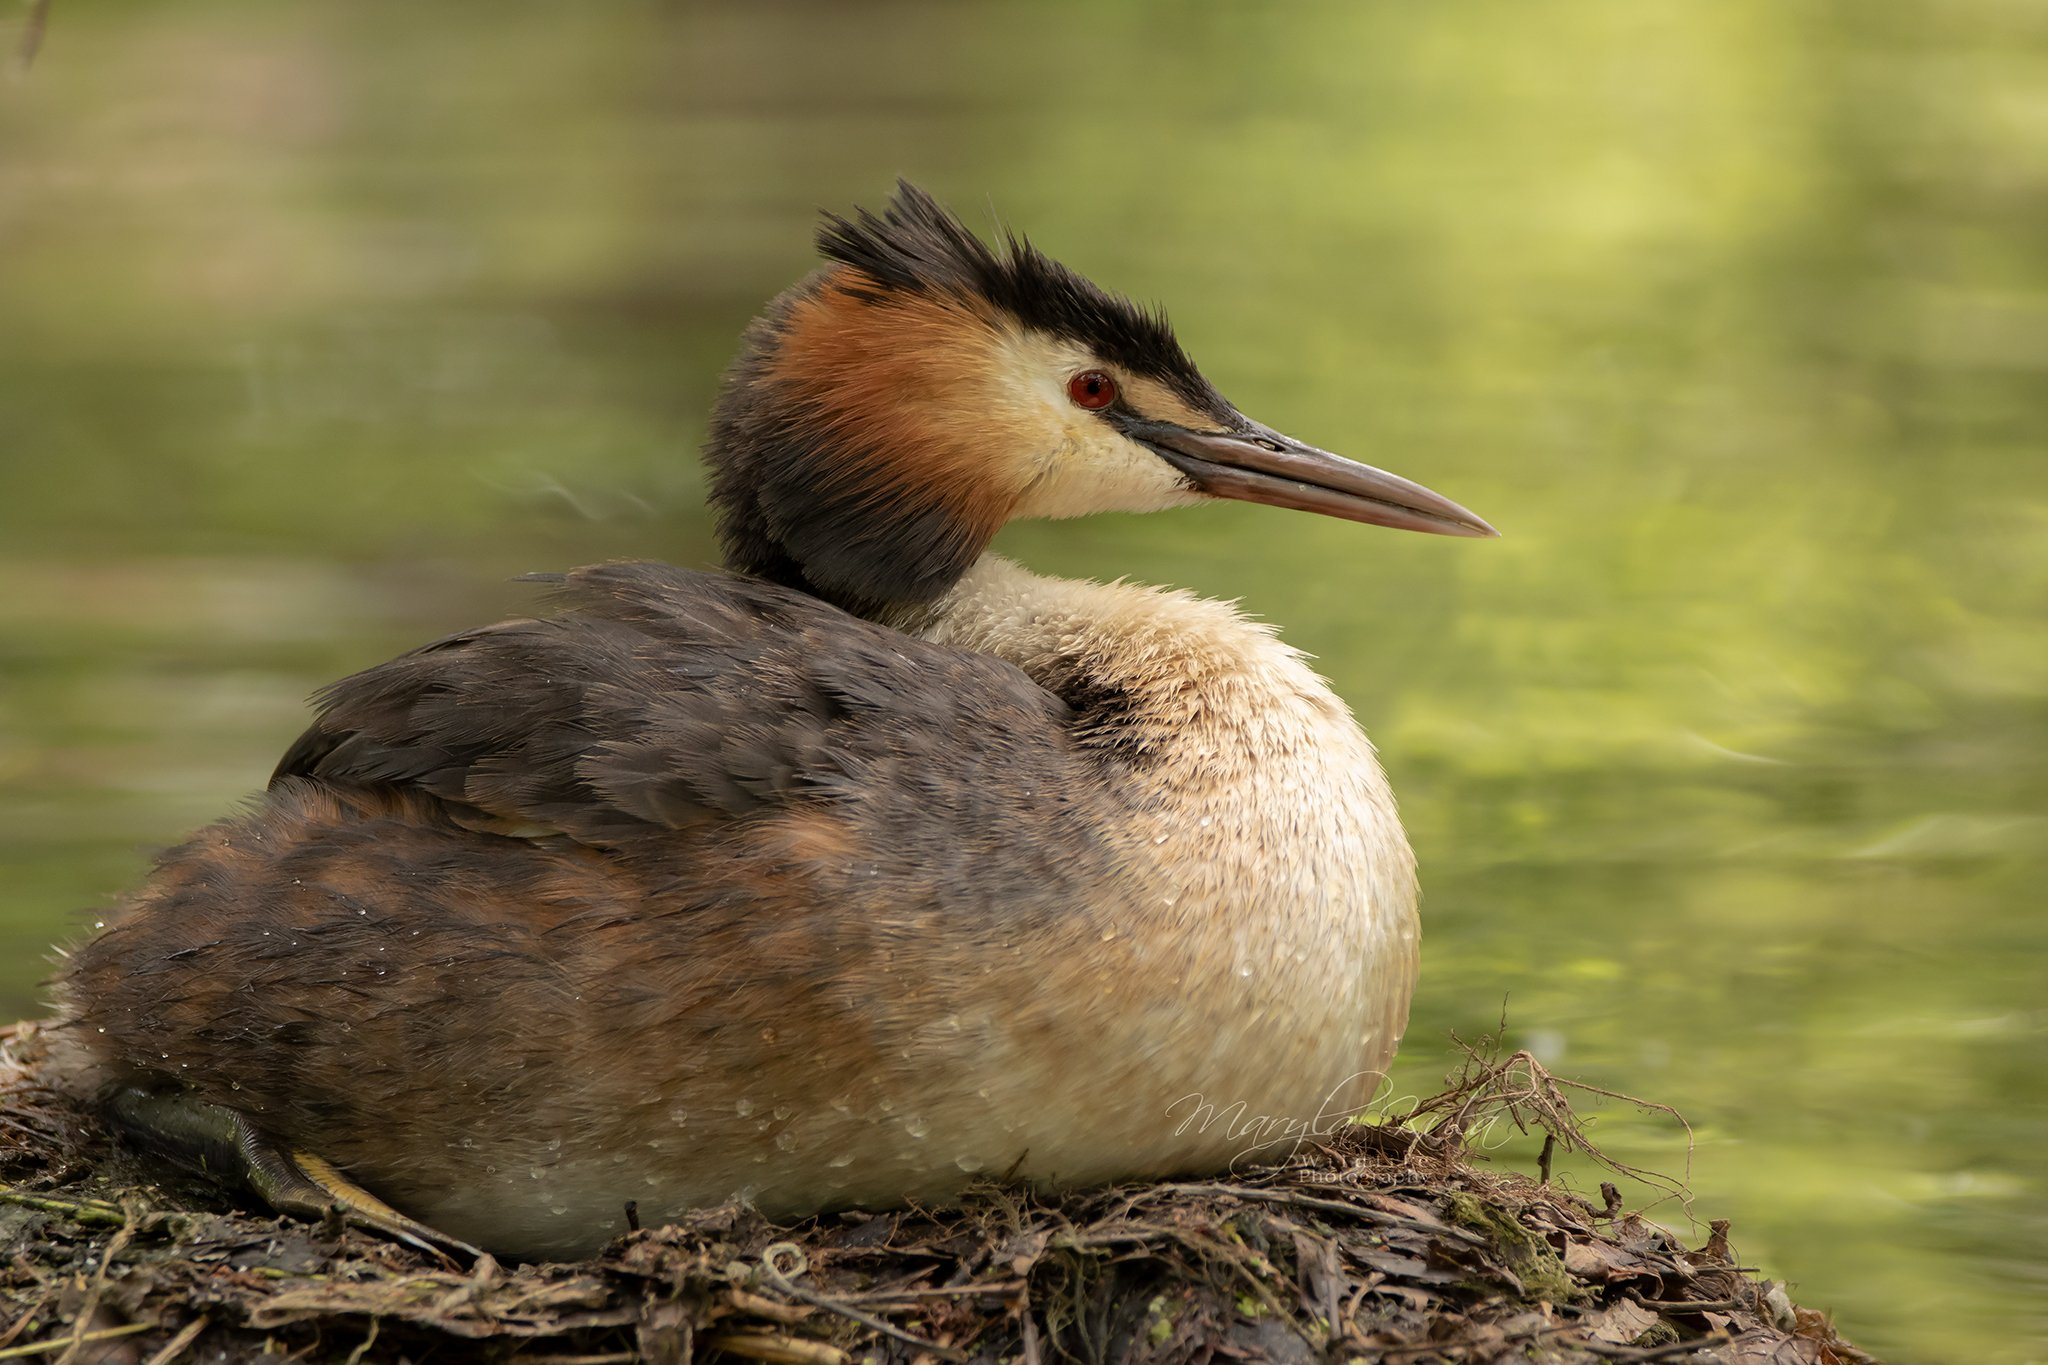 great crested grebe, grebe, birds, nature, wildlife, water, canon, sigma, MARIA KULA